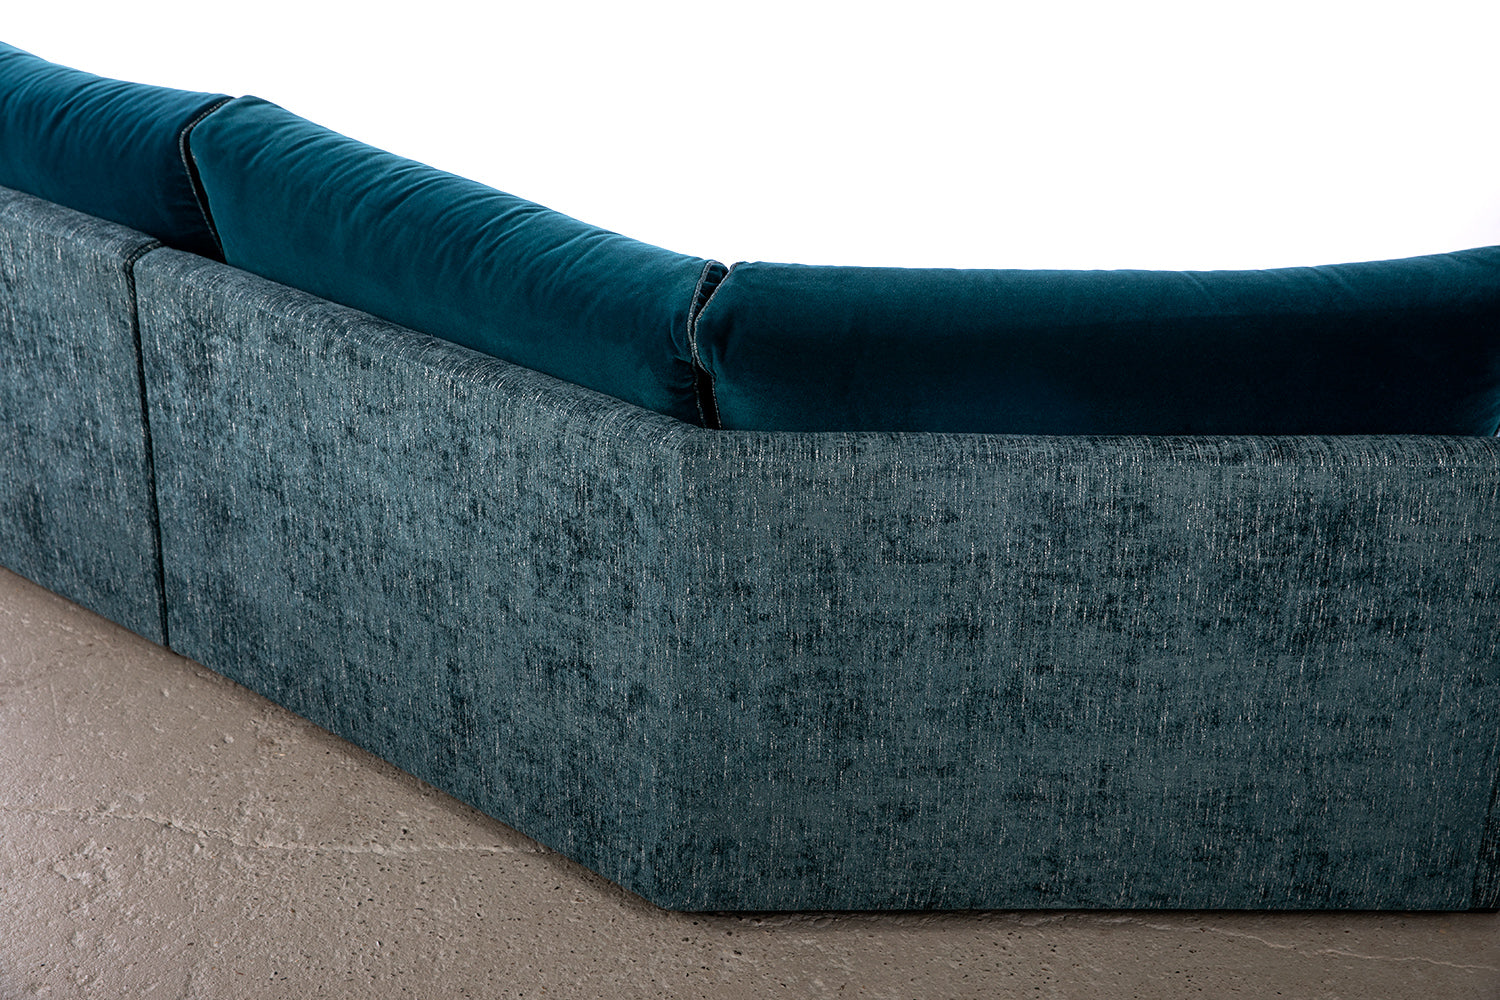 ffabb Coasty Slim modular Sectional in peacock mohair back angle corner